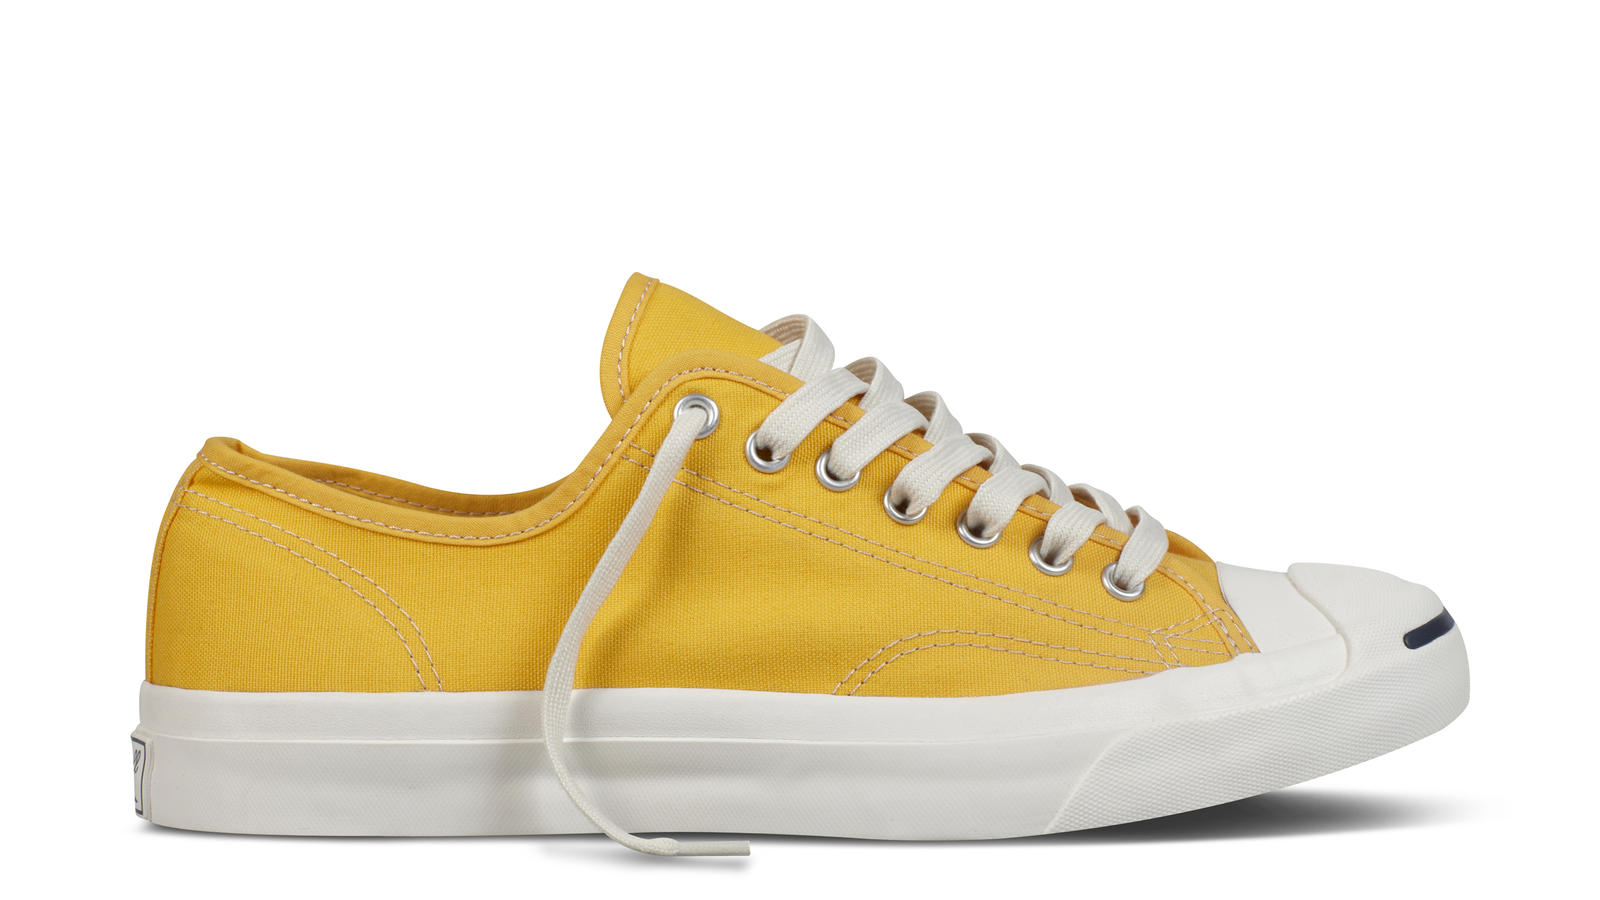 promo code 4568e 71902 Jack Purcell Duck Canvas Original